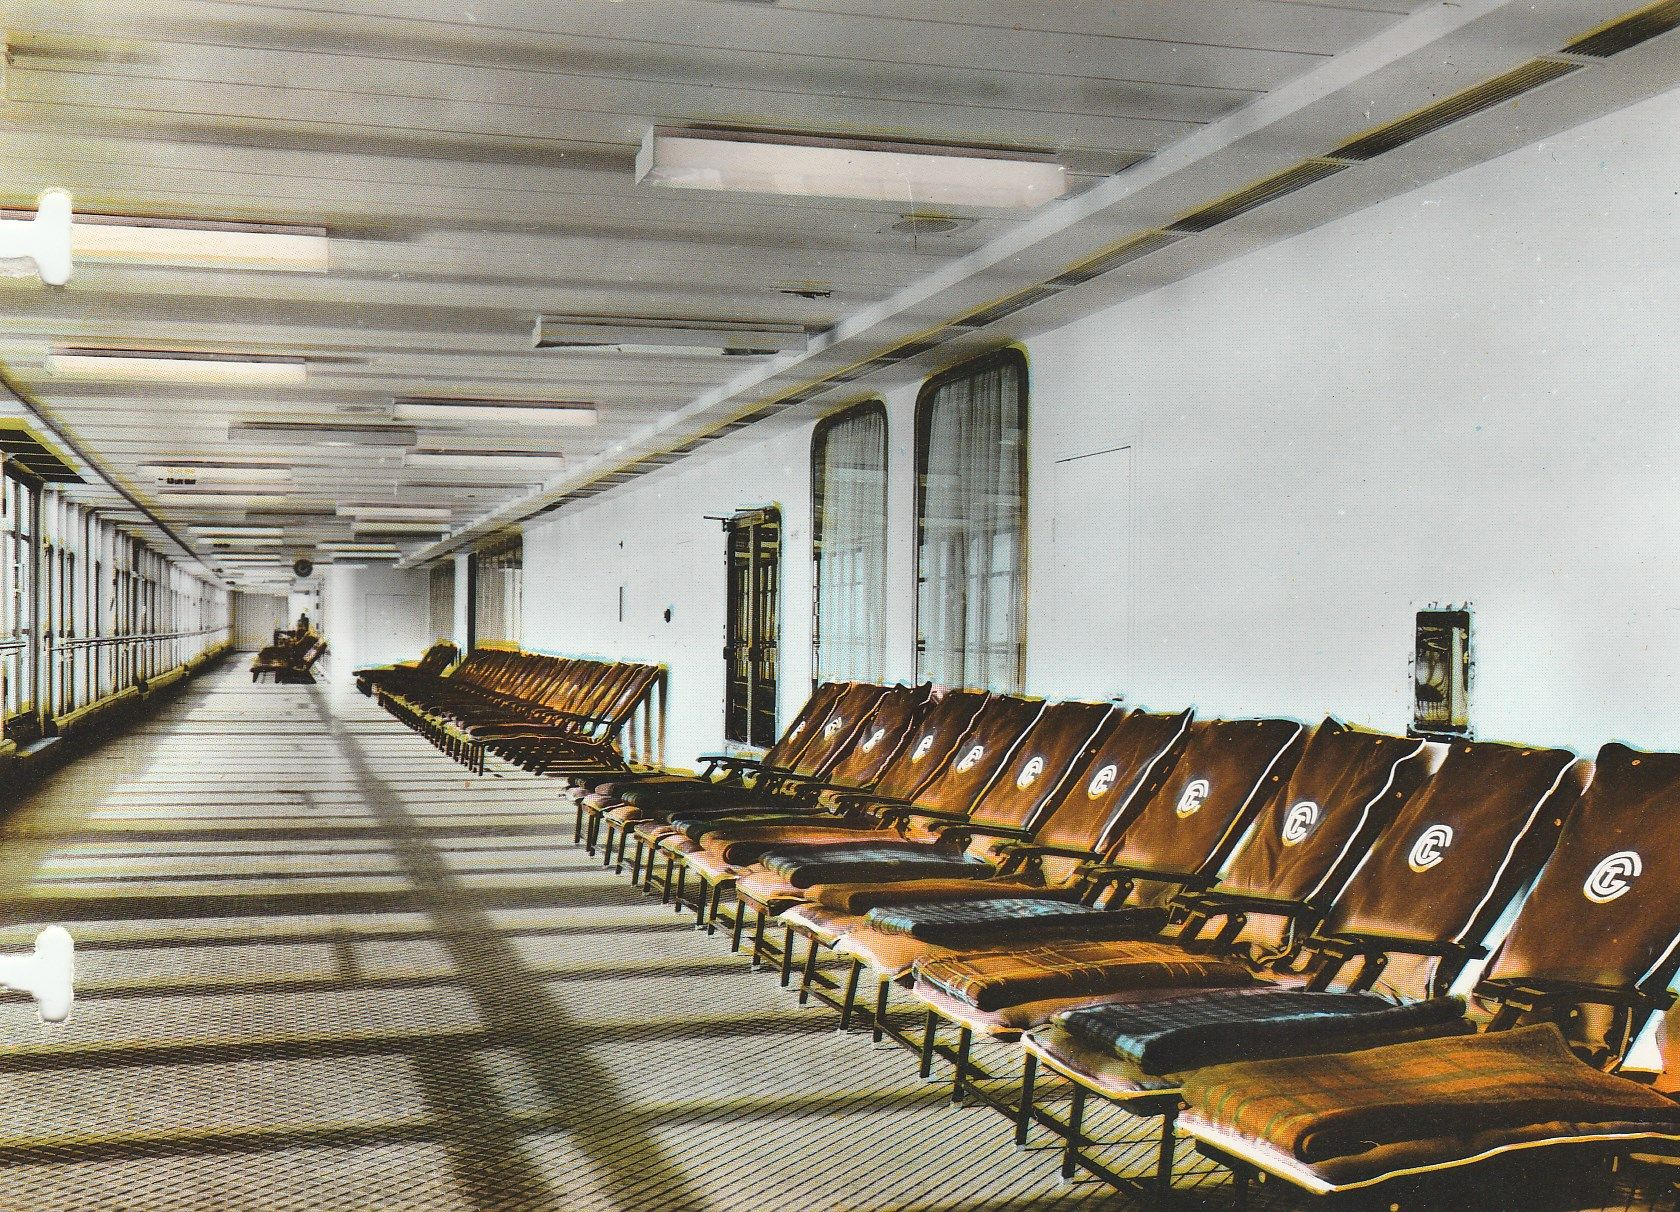 The First Class Pont Promenade, with serried enfilade of deck chairs, of the France of the Compagnie Générale Transatlantique, more commonly known as The French Line. 1962. Image courtesy the private collection of John Cunard-Shutter.